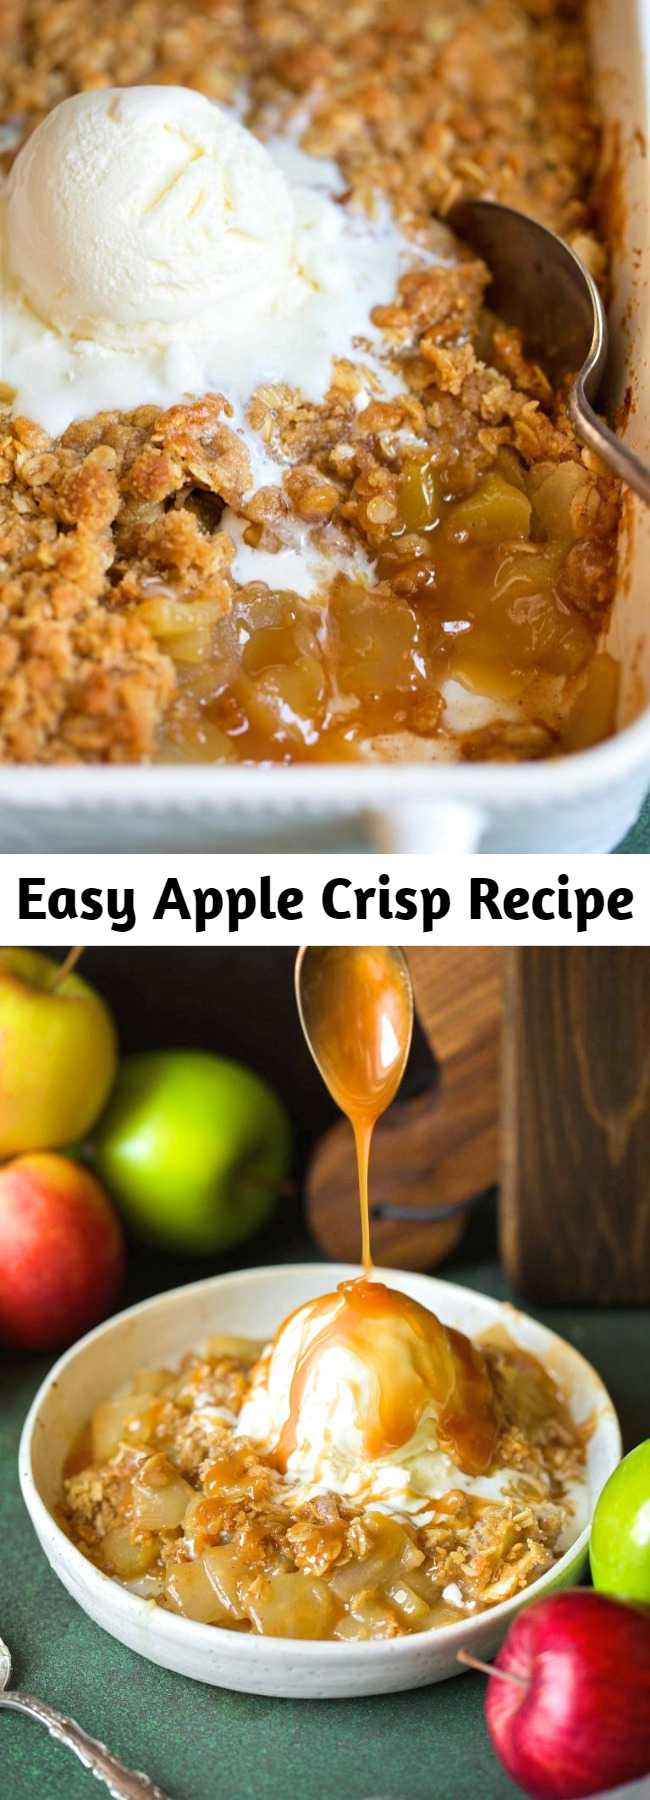 Easy Apple Crisp Recipe - this is hands down the best apple crisp recipe you'll try! Definitely a family favorite. It's brimming with fresh juicy apples, it has the perfect amount of cinnamon sweetness, and that crisp buttery oat topping is what dreams are made of! #applecrisp #apple #dessert #recipe